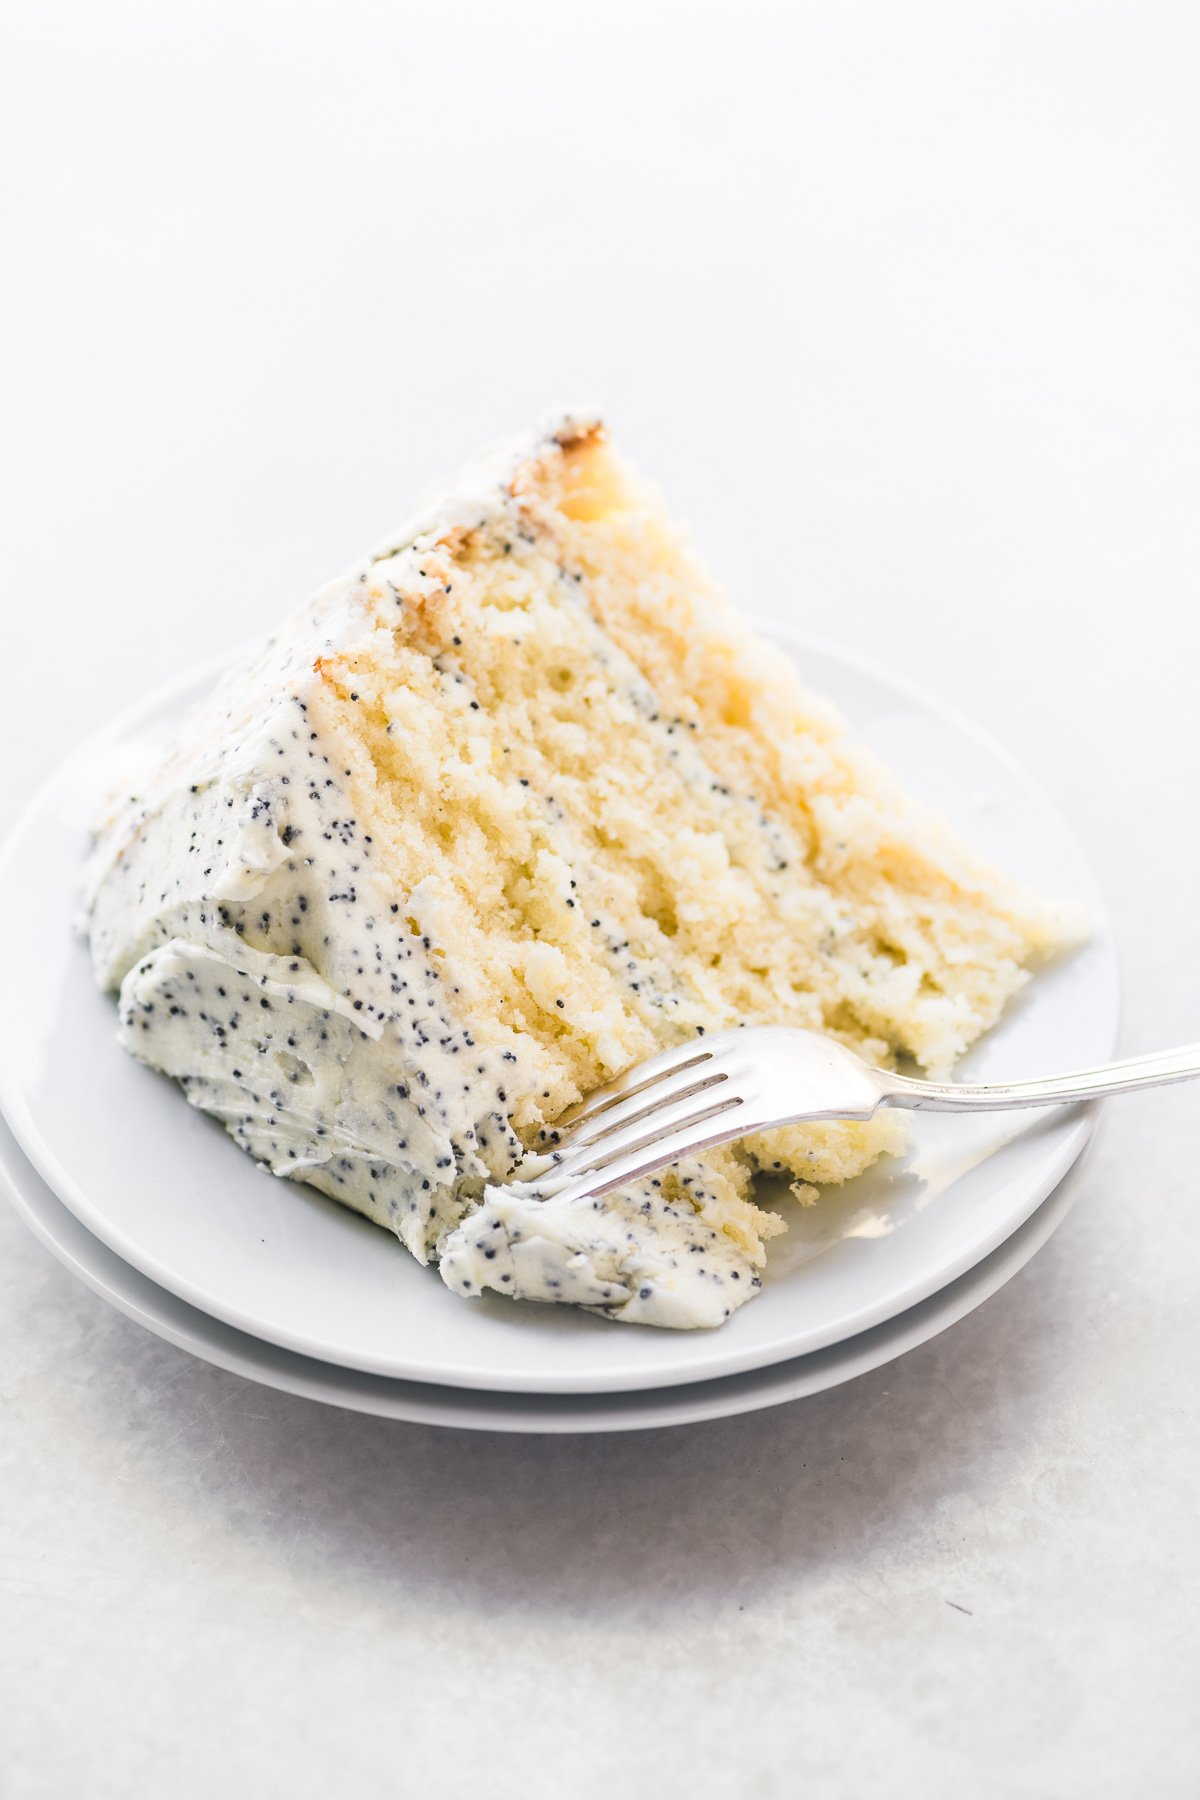 A slice of lemon layer cake with lemon poppy seed buttercream frosting, on a plate